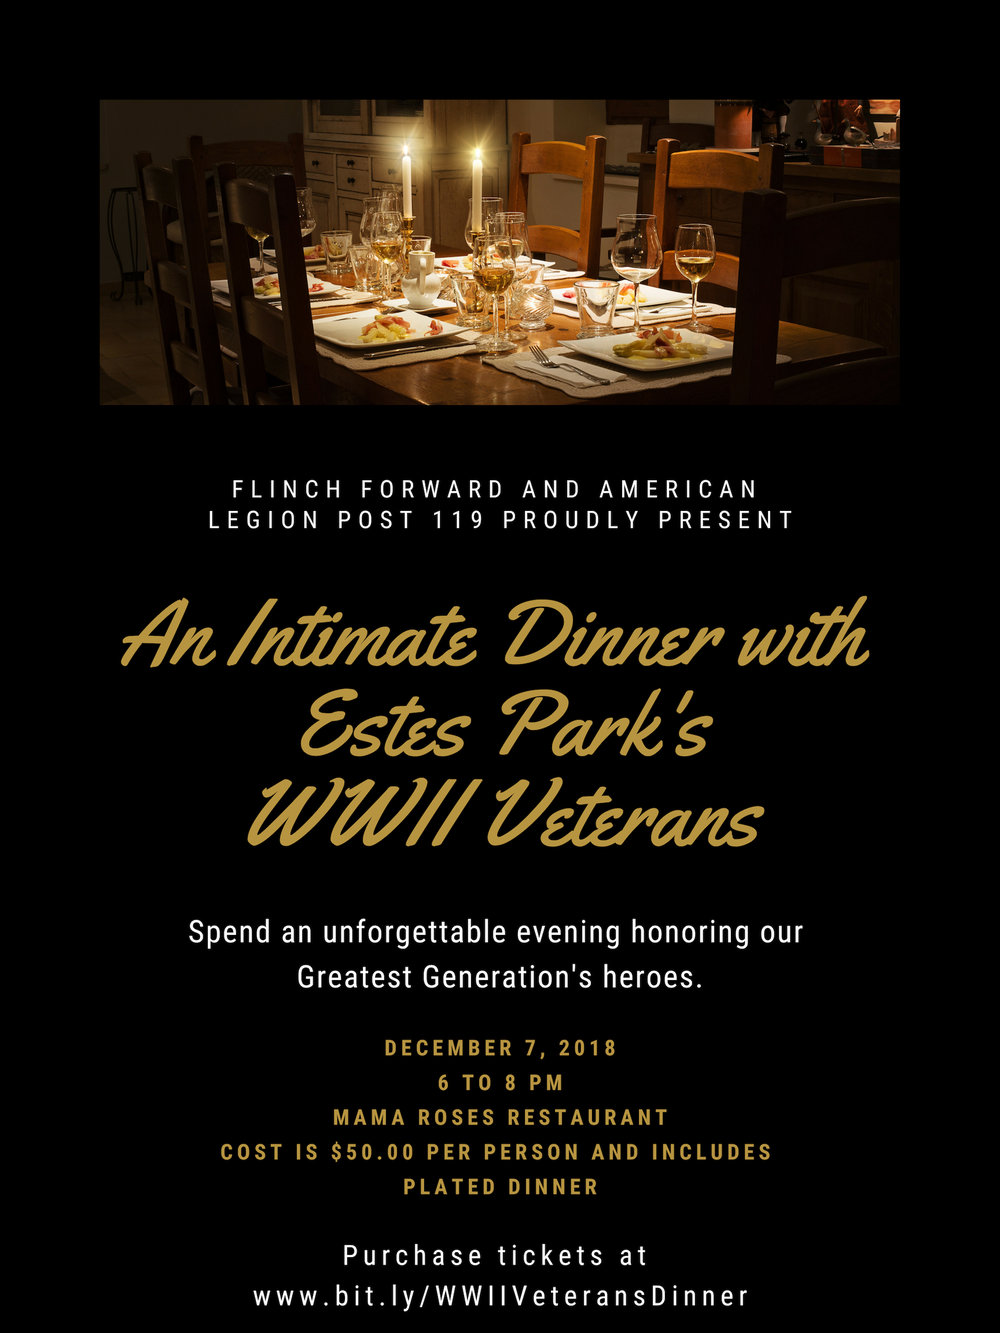 An Intimate Dinner with Estes Park's World War II Veterans   Please join Flinch Forward and American Legion Post 119 at An Intimate Dinner with Estes Park's WWII Veterans. This will be an unforgettable, once in a lifetime evening where we will be honoring and giving tribute to our Greatest Generations Heroes  The date of this honorary dinner is December 7th, 2018, the 77th anniversary of Pearl Harbor Day, at Mama Roses Restaurant from 6 to 8 pm.  Unfortunately, less than 3% of the heroes that served in WWII are still with us today, and it's expected that we will lose another 85% of them in the next five to seven years. So this truly is a once in a lifetime opportunity to be in the same room with them for an evening of honor and fellowship.  Tickets are limited and cost $50.00 each Each ticket includes your place at the table and plated dinner with one of our 12 remaining WWII Veterans who will all be in attendance. Your ticket helps to pay for the Veterans' dinner as well as each one of their chaperones.  Adam Shake, Ken Zornes, and Dick Life will be your Masters of Ceremonies and will offer a brief introduction of each of the 12 WWII Veterans in attendance as well as their bios.  WWII Veterans in attendance include:  Les Foiles - US Navy  Harry Livingston - US Navy  Mary Livingston - US Army  Don Corey - US Navy  Rey Olson - US Navy  Nita Raines - US Navy  Bob Brunson - US Navy  Jim White - US Navy  Don Gallup - Army Air Corps  Harvey Beishman - US Navy  Stan Jones - US Army and  Robert Jacker - US Army  Seating is limited so please purchase your tickets early and reserve your place at the table.  If you or your organization are interested in sponsoring this event or you have any questions, please contact Adam Shake at  ashake@flinchforward.org . All proceeds help pay for the event as well as supporting programing and services for Veterans and First Responders through Flinch Forward and American Legion Post 119. For more information on these organizations, please visit  www.flinchforward.org  and  www.esteslegion.org    Thank you for joining us for this special event!